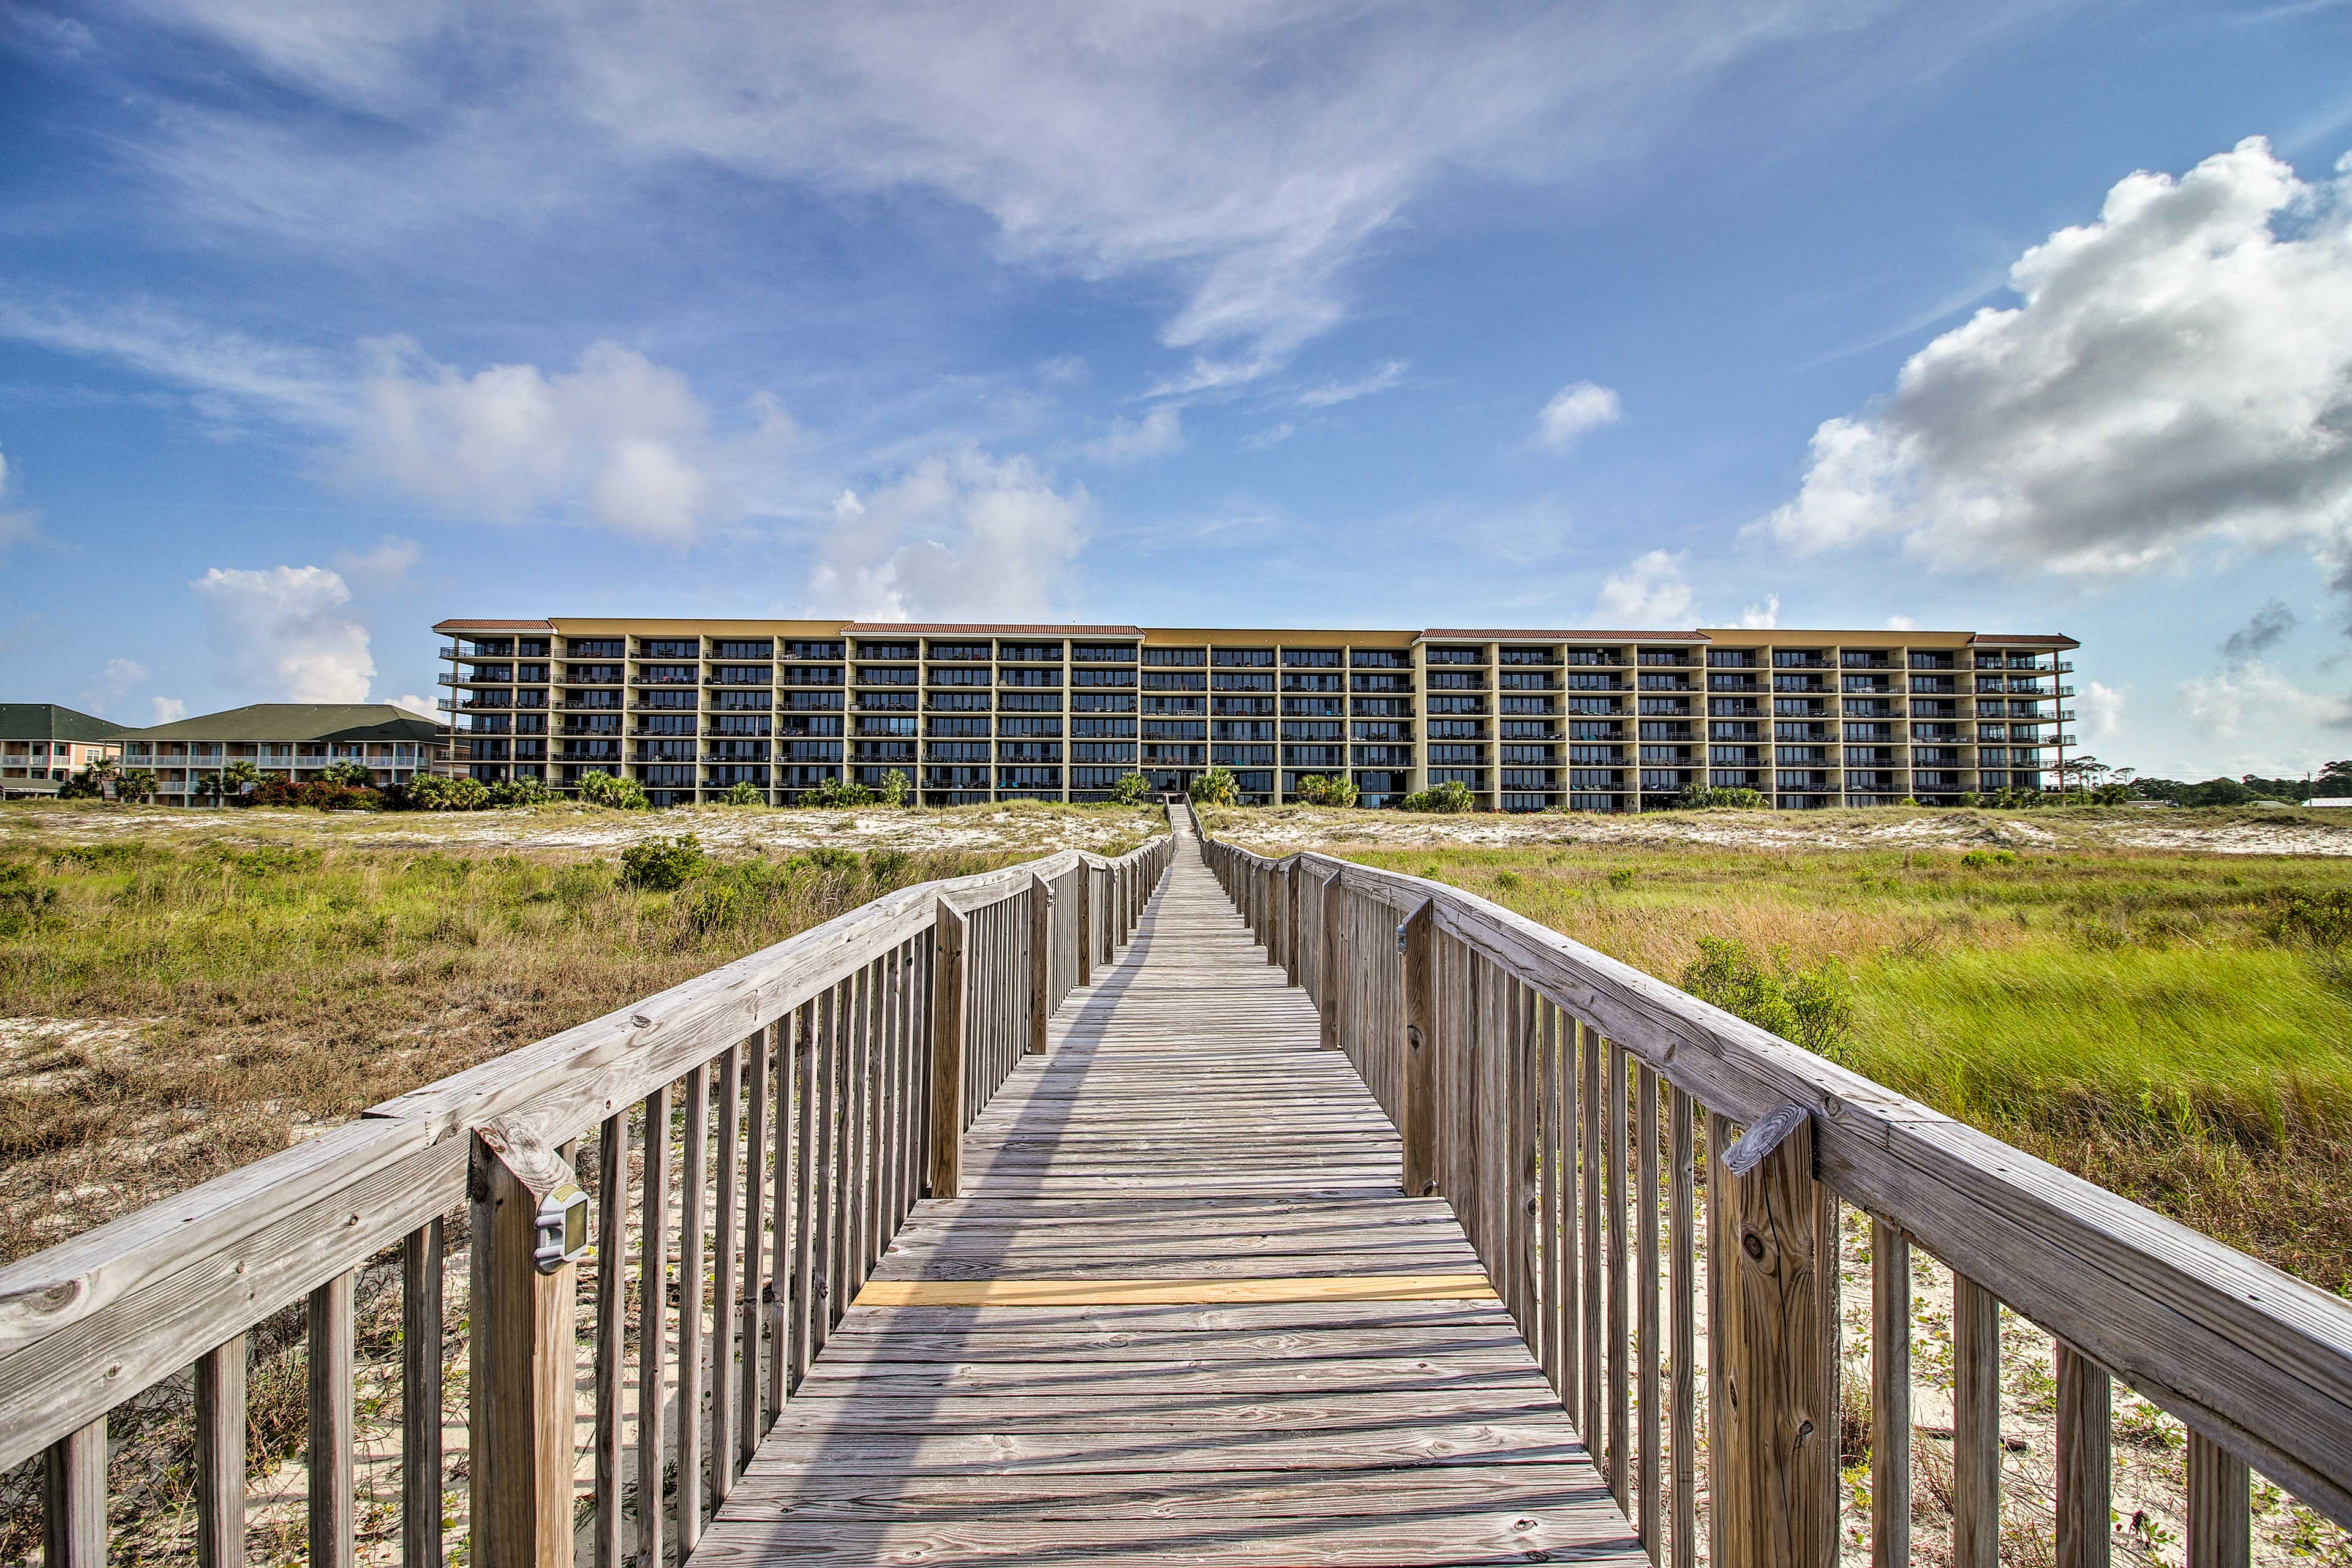 You'll just be a boardwalk away from the beach.